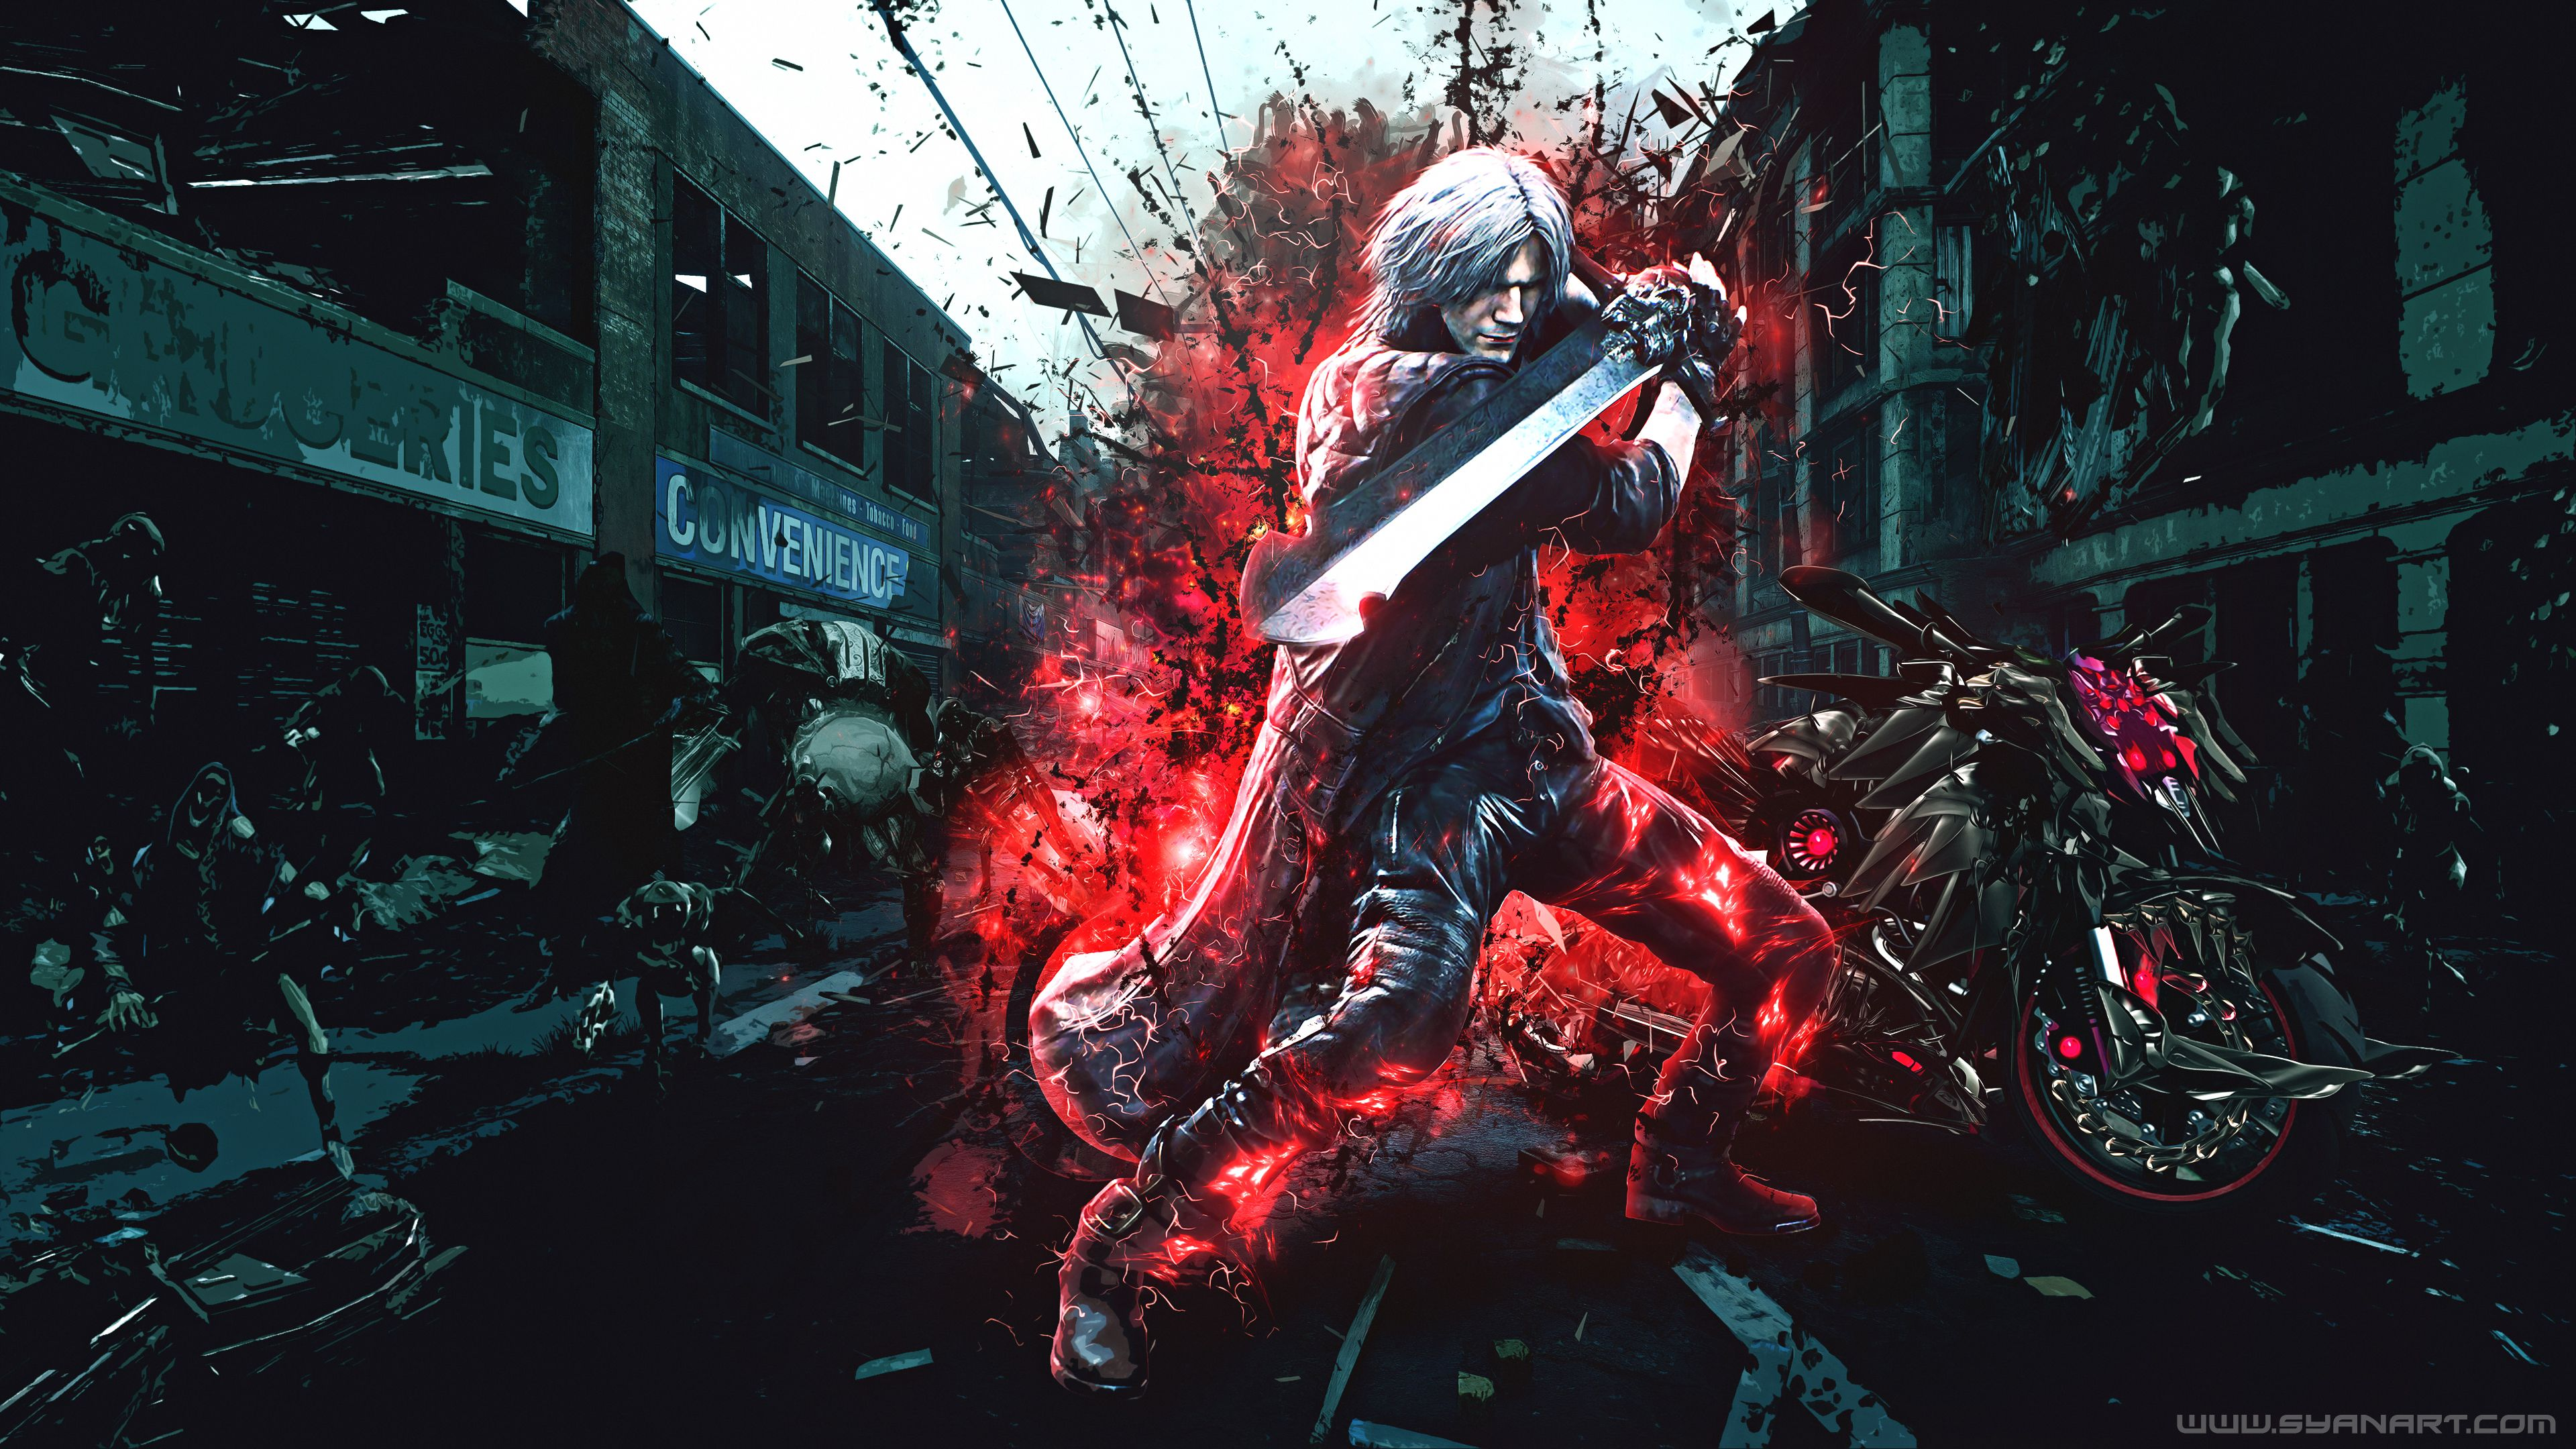 Devil May Cry 5 Wallpapers Top Free Devil May Cry 5